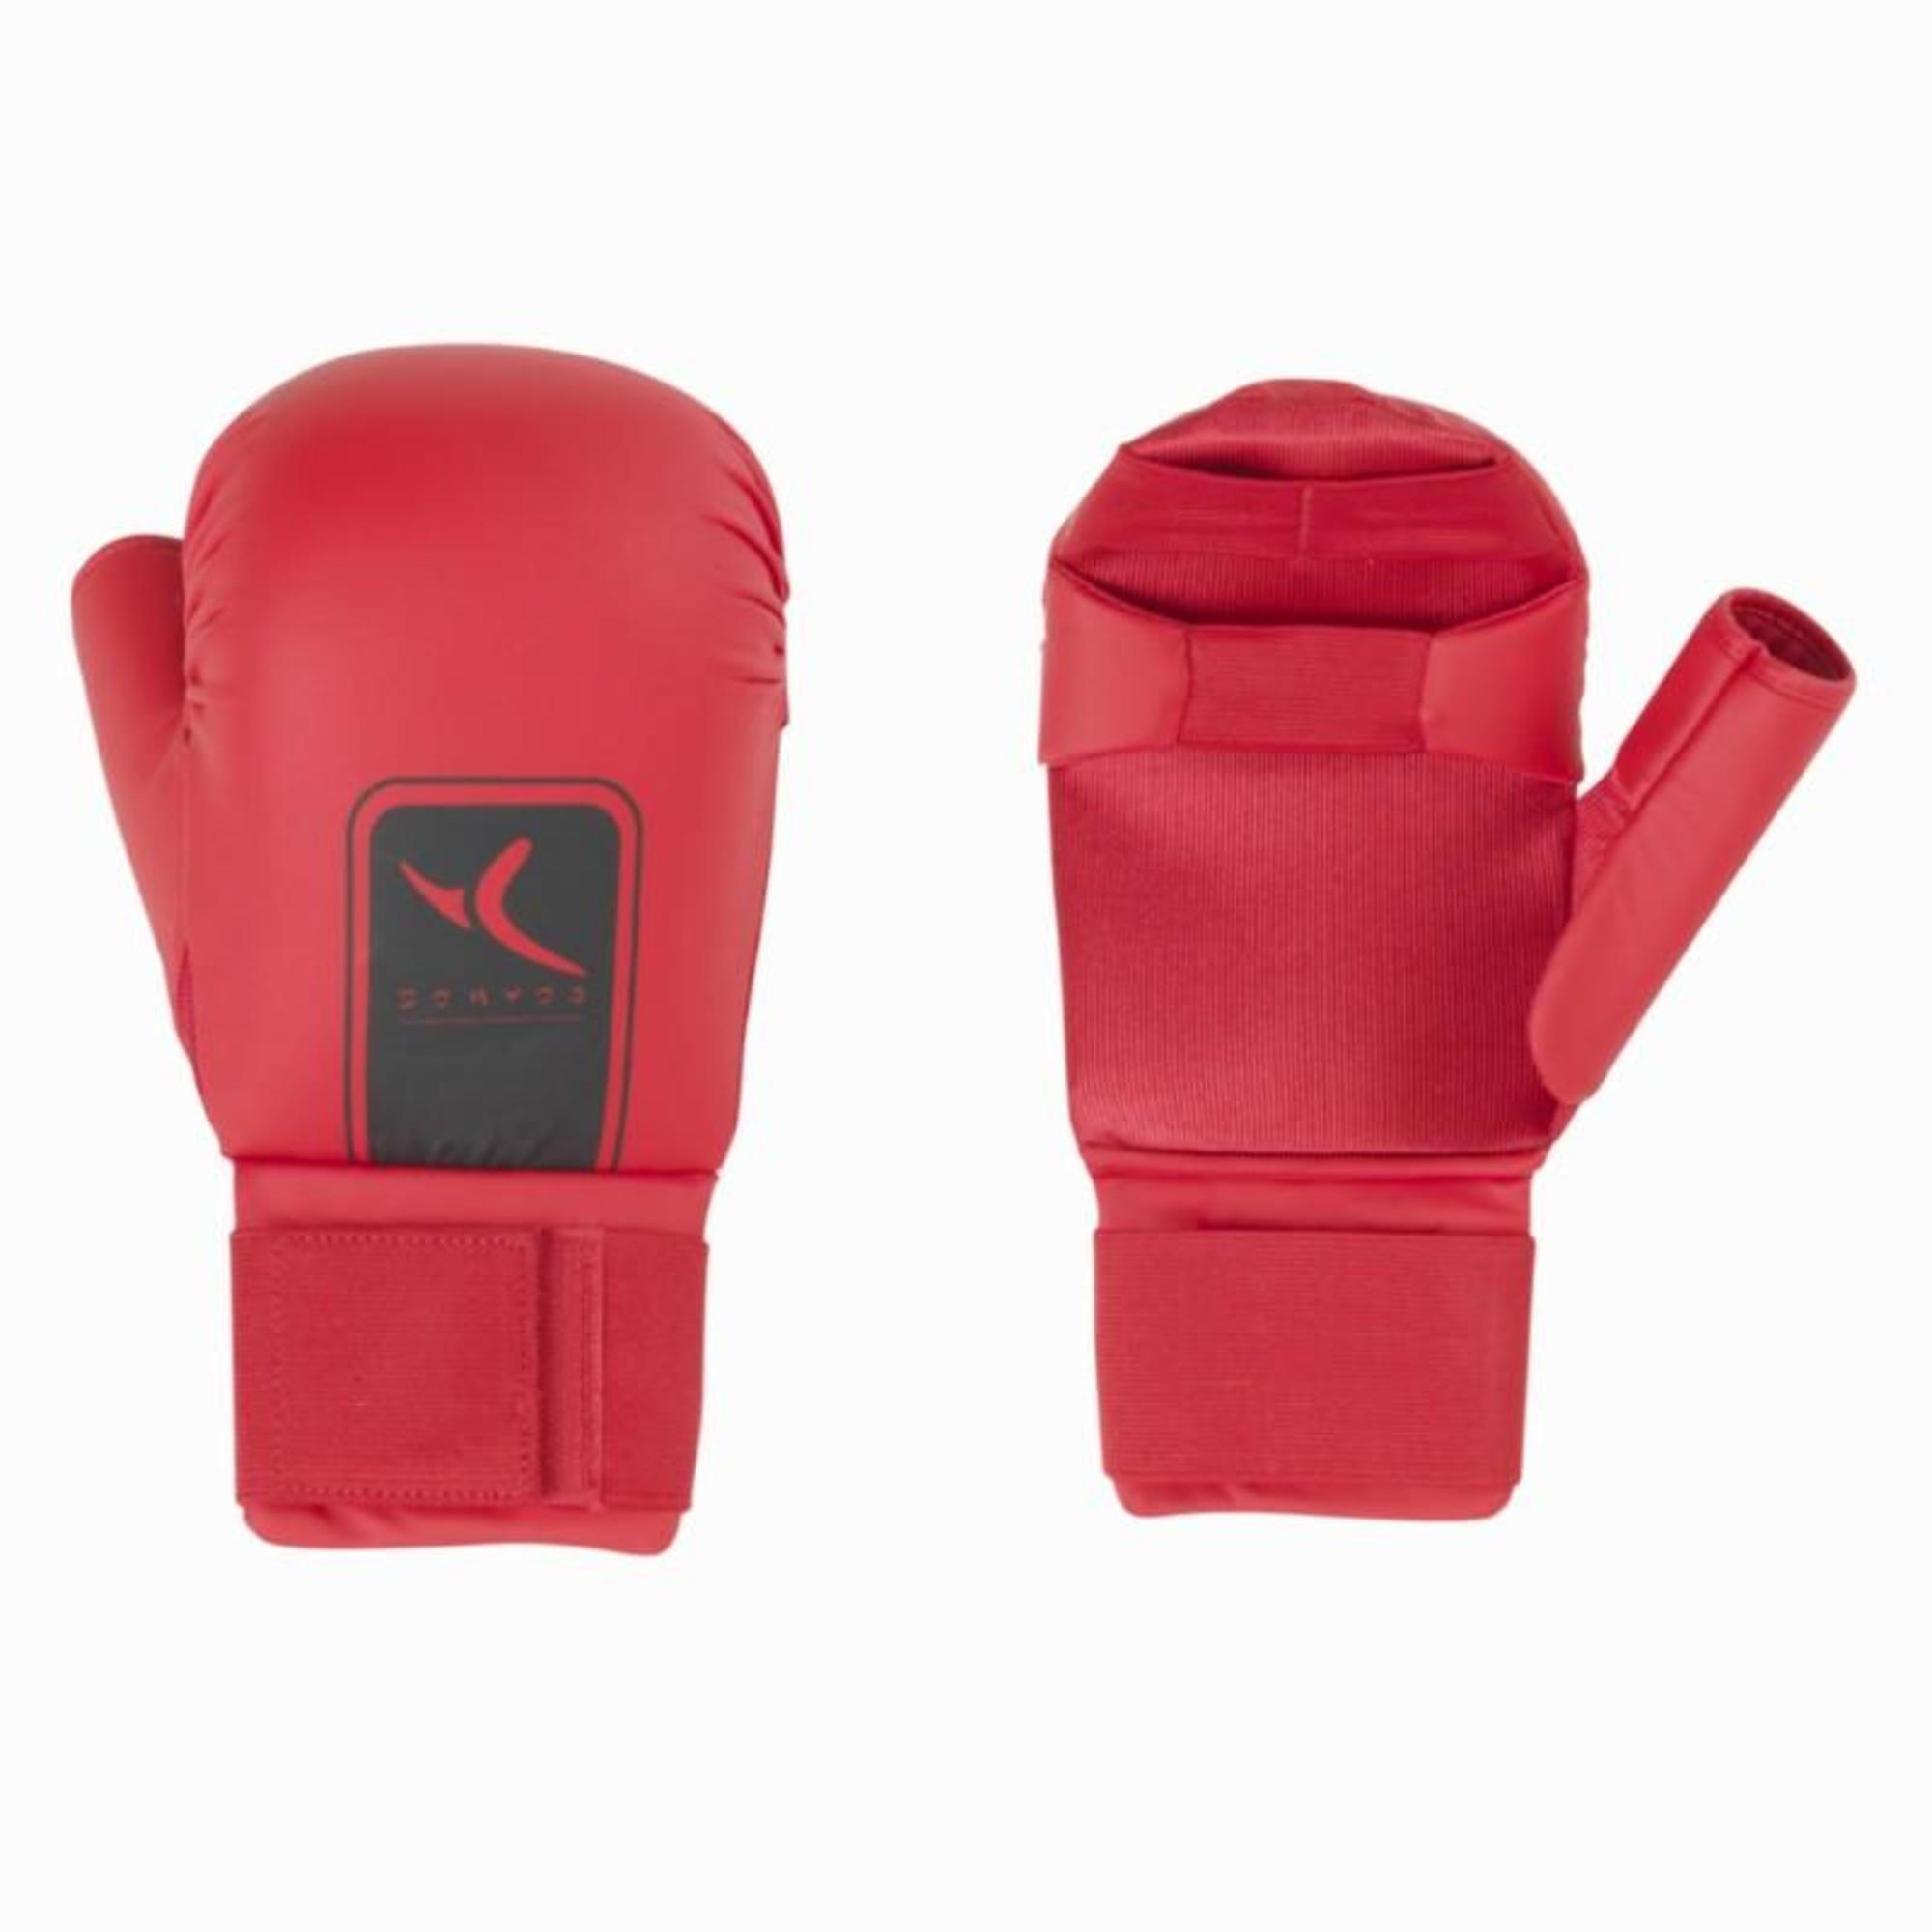 Karate Gloves  Red  Domyos by Decathlon